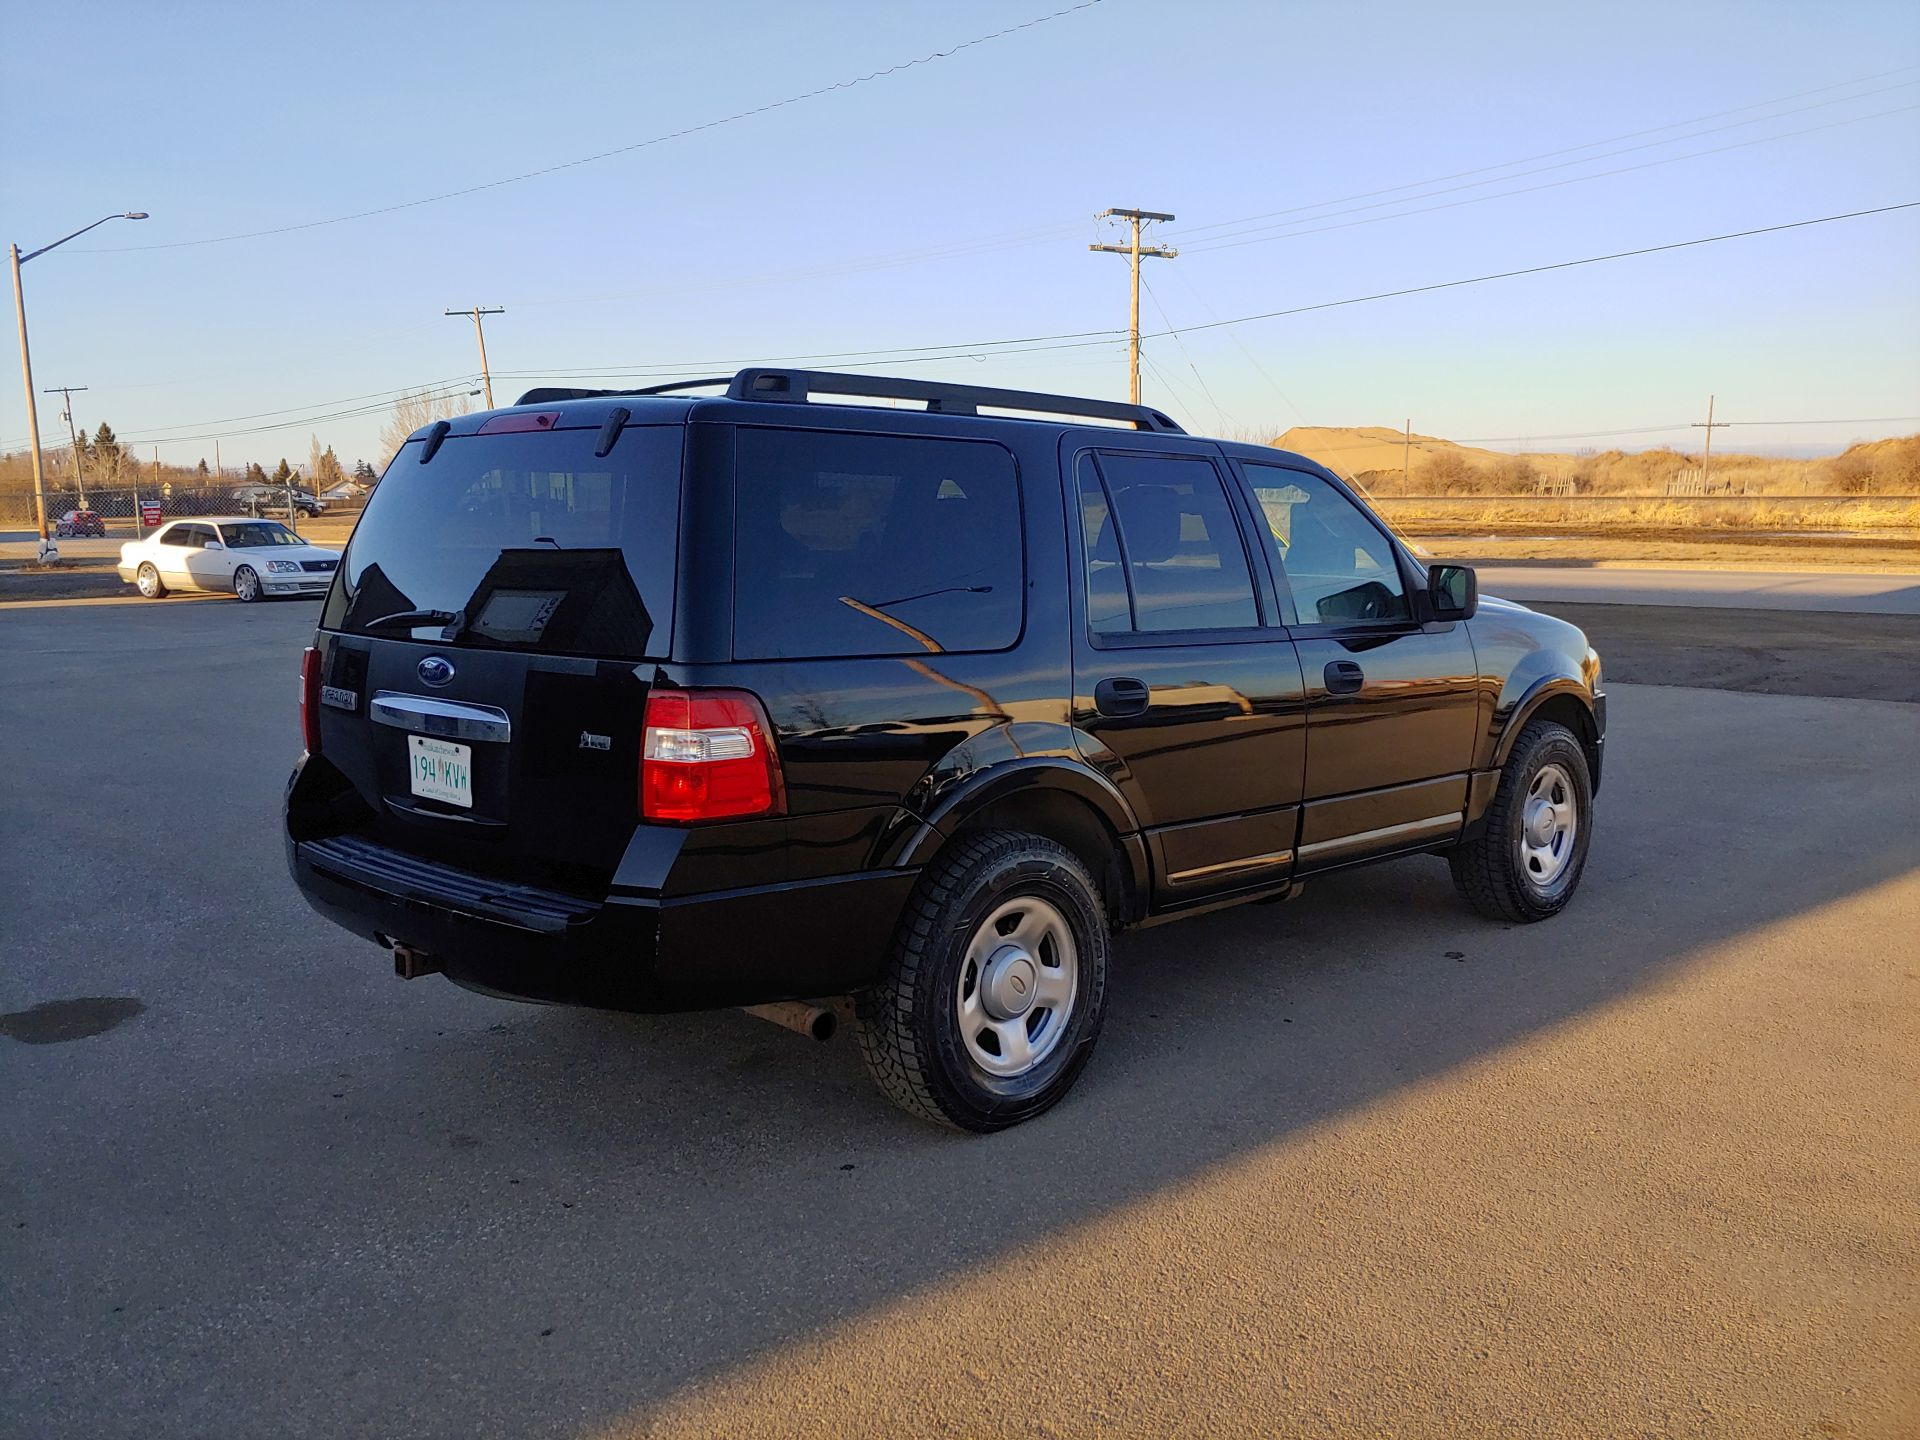 expedition ford xlt 4x4 ssv 2009